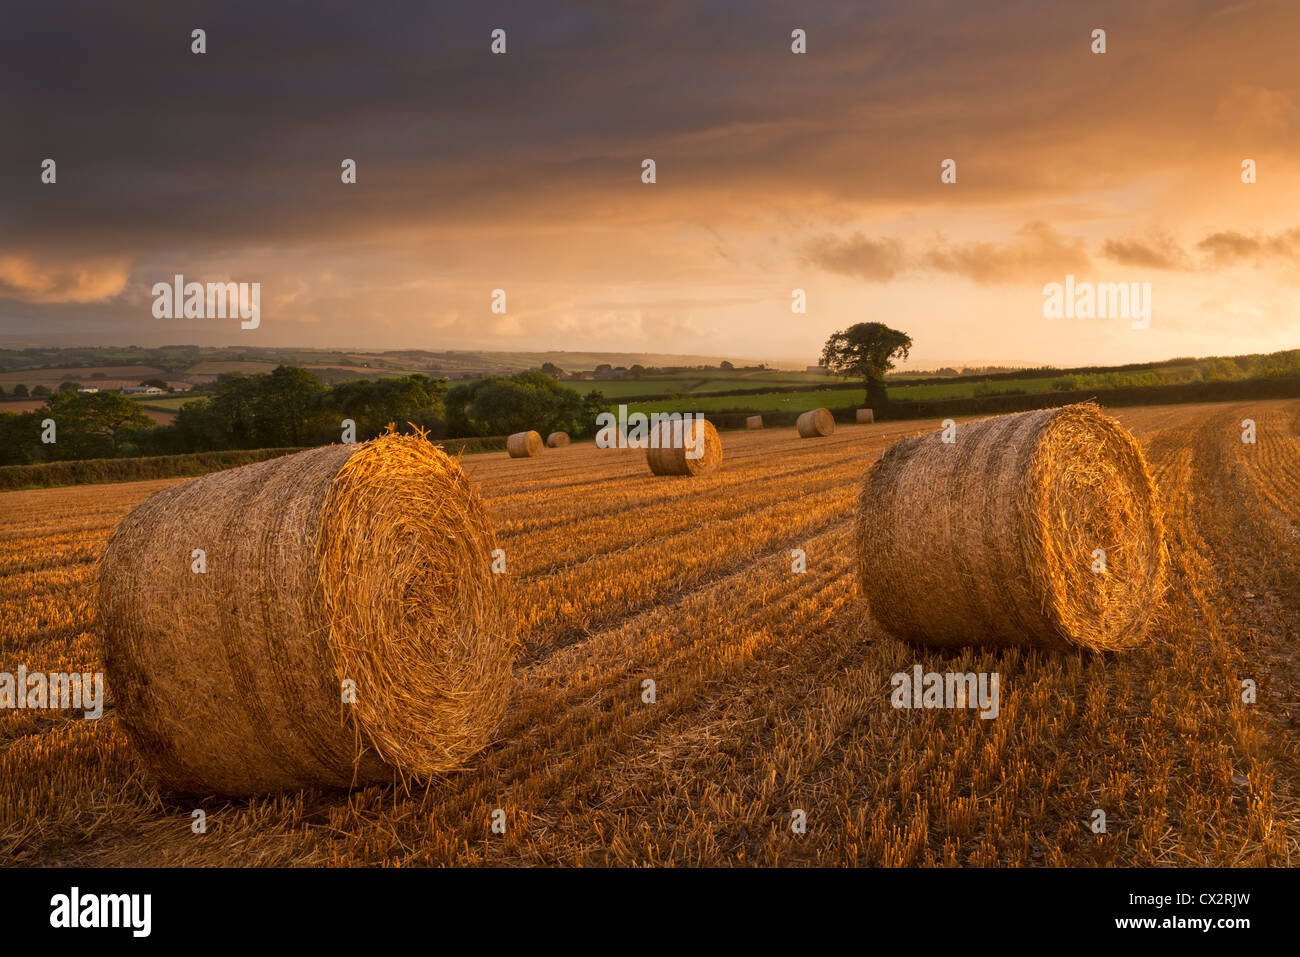 Hay Bales in a harvested field at sunset, Eastington, Devon, England. Summer (August) 2012. - Stock Image